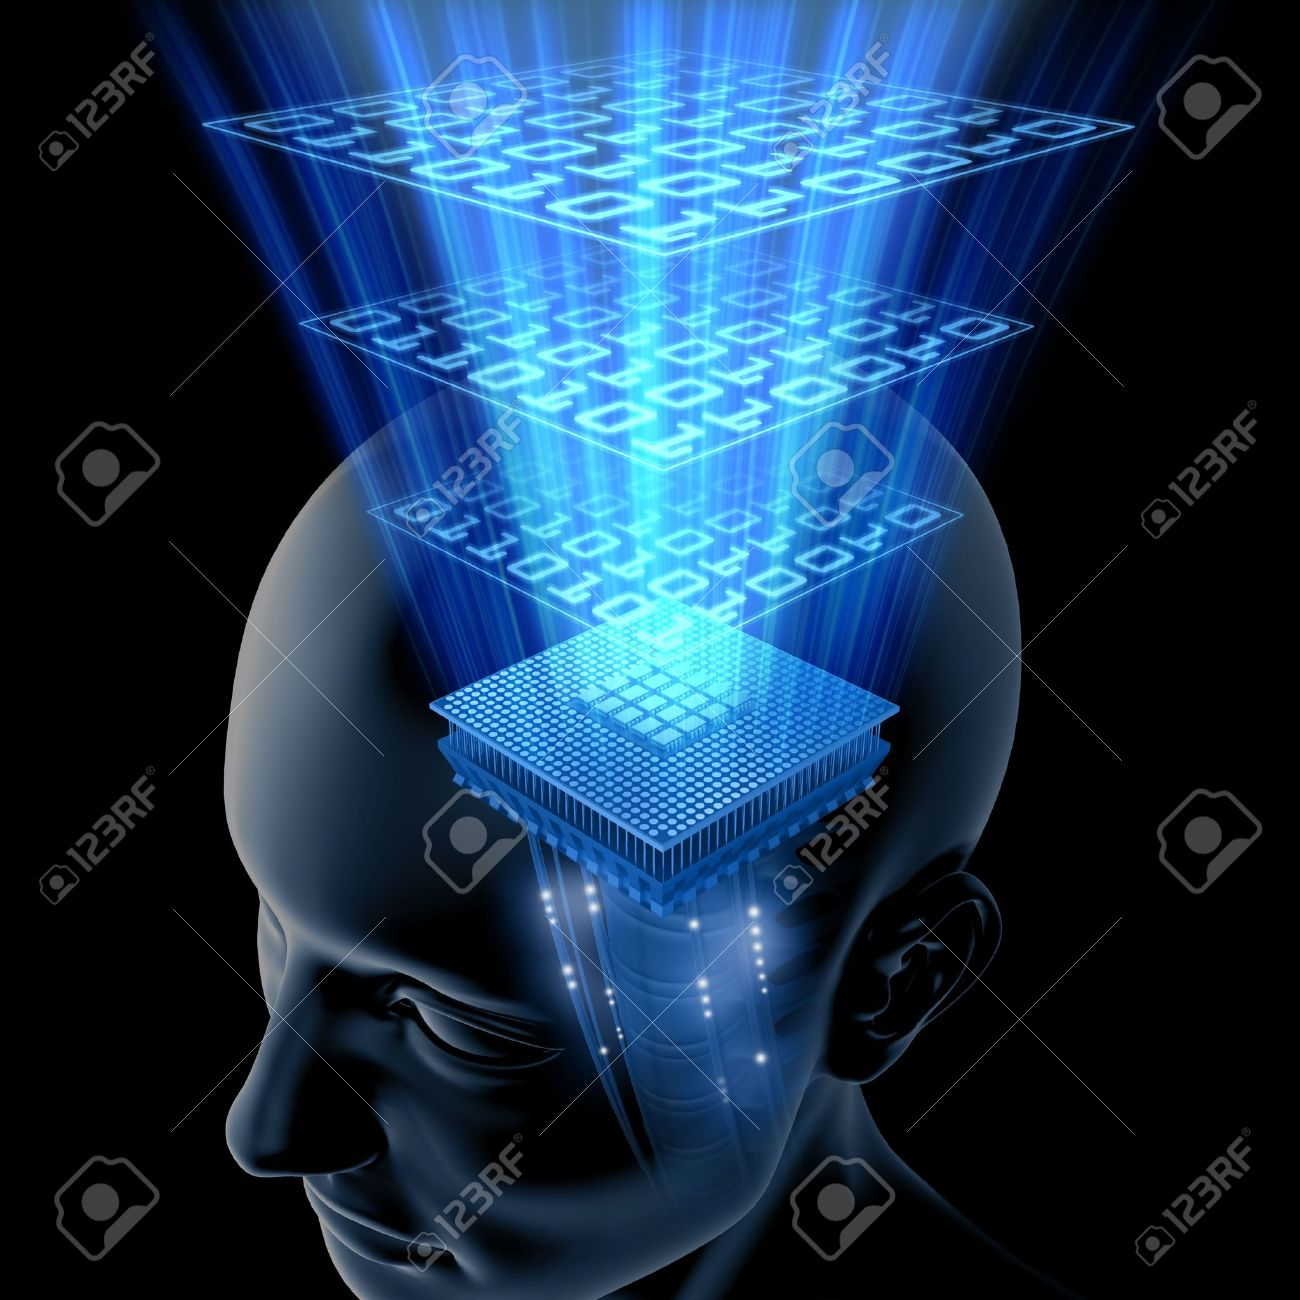 The Brain is Thinking (Processor) Stock Photo - 1358561